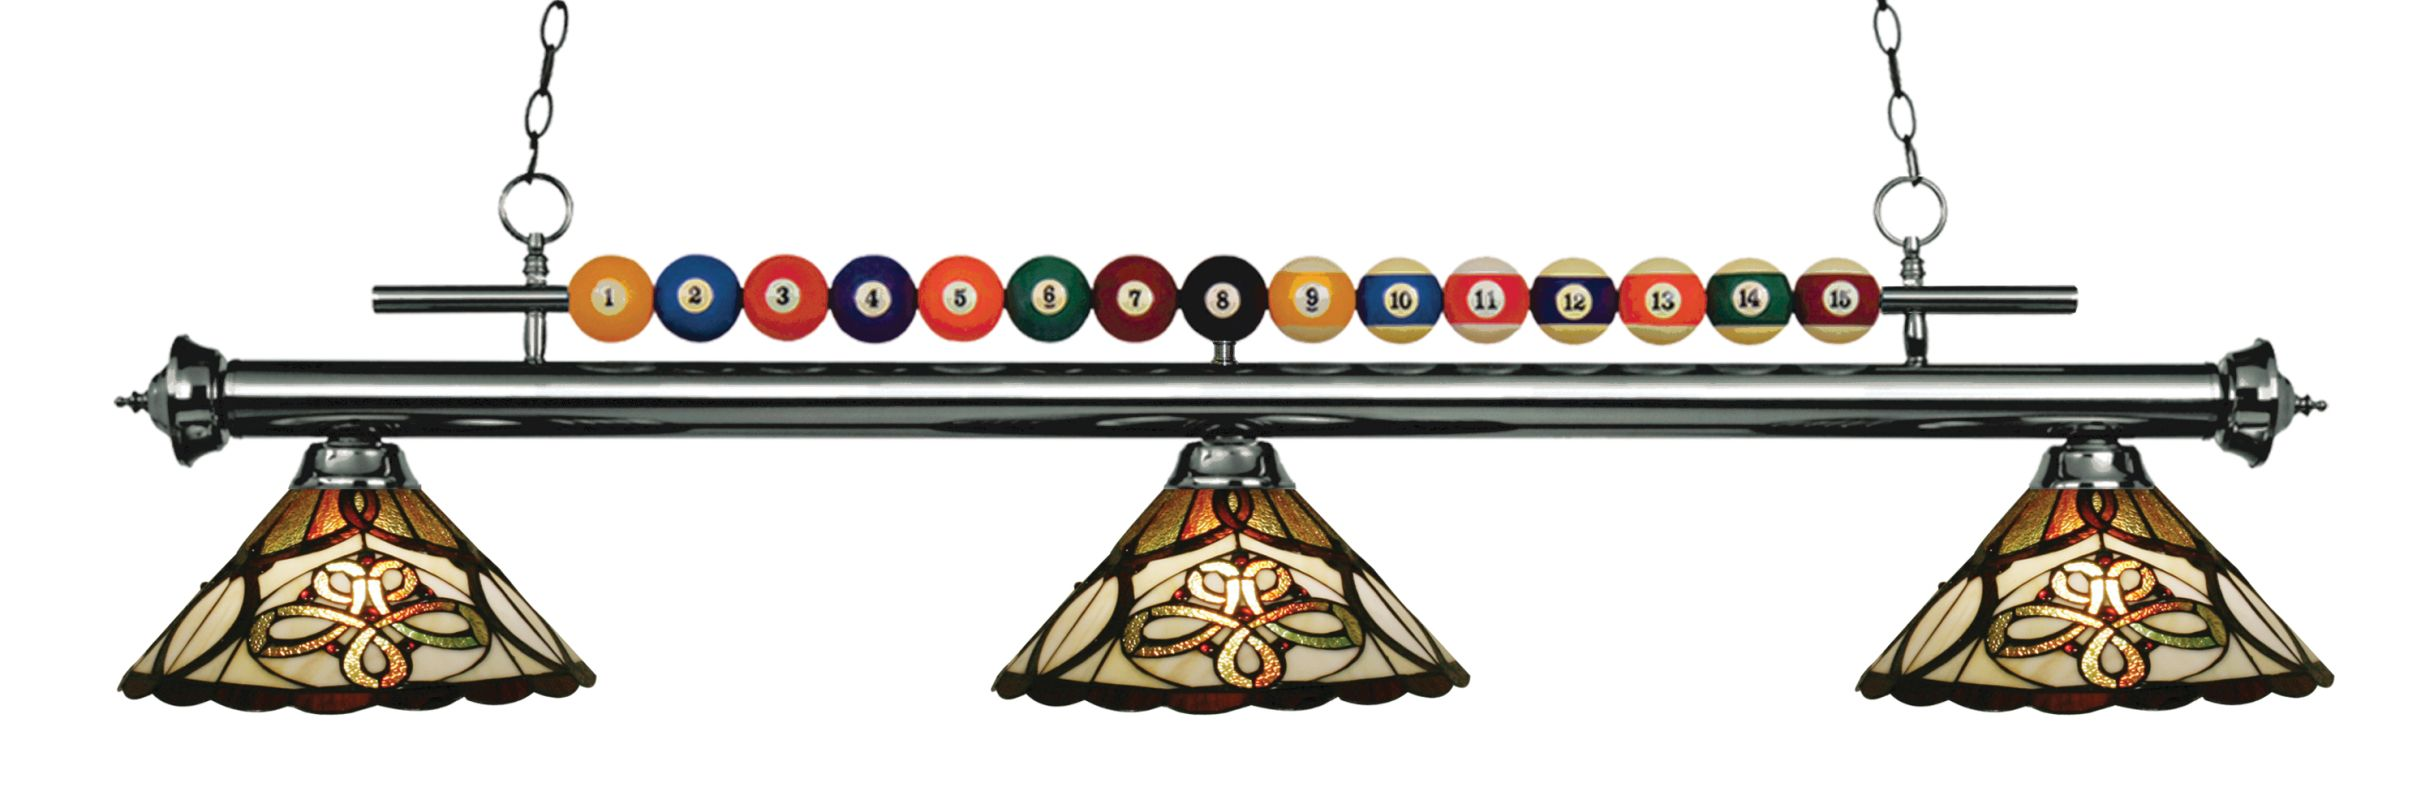 Z-Lite 170-Z14-10 Shark 3 Light Billiard Chandelier with Multi-Colored